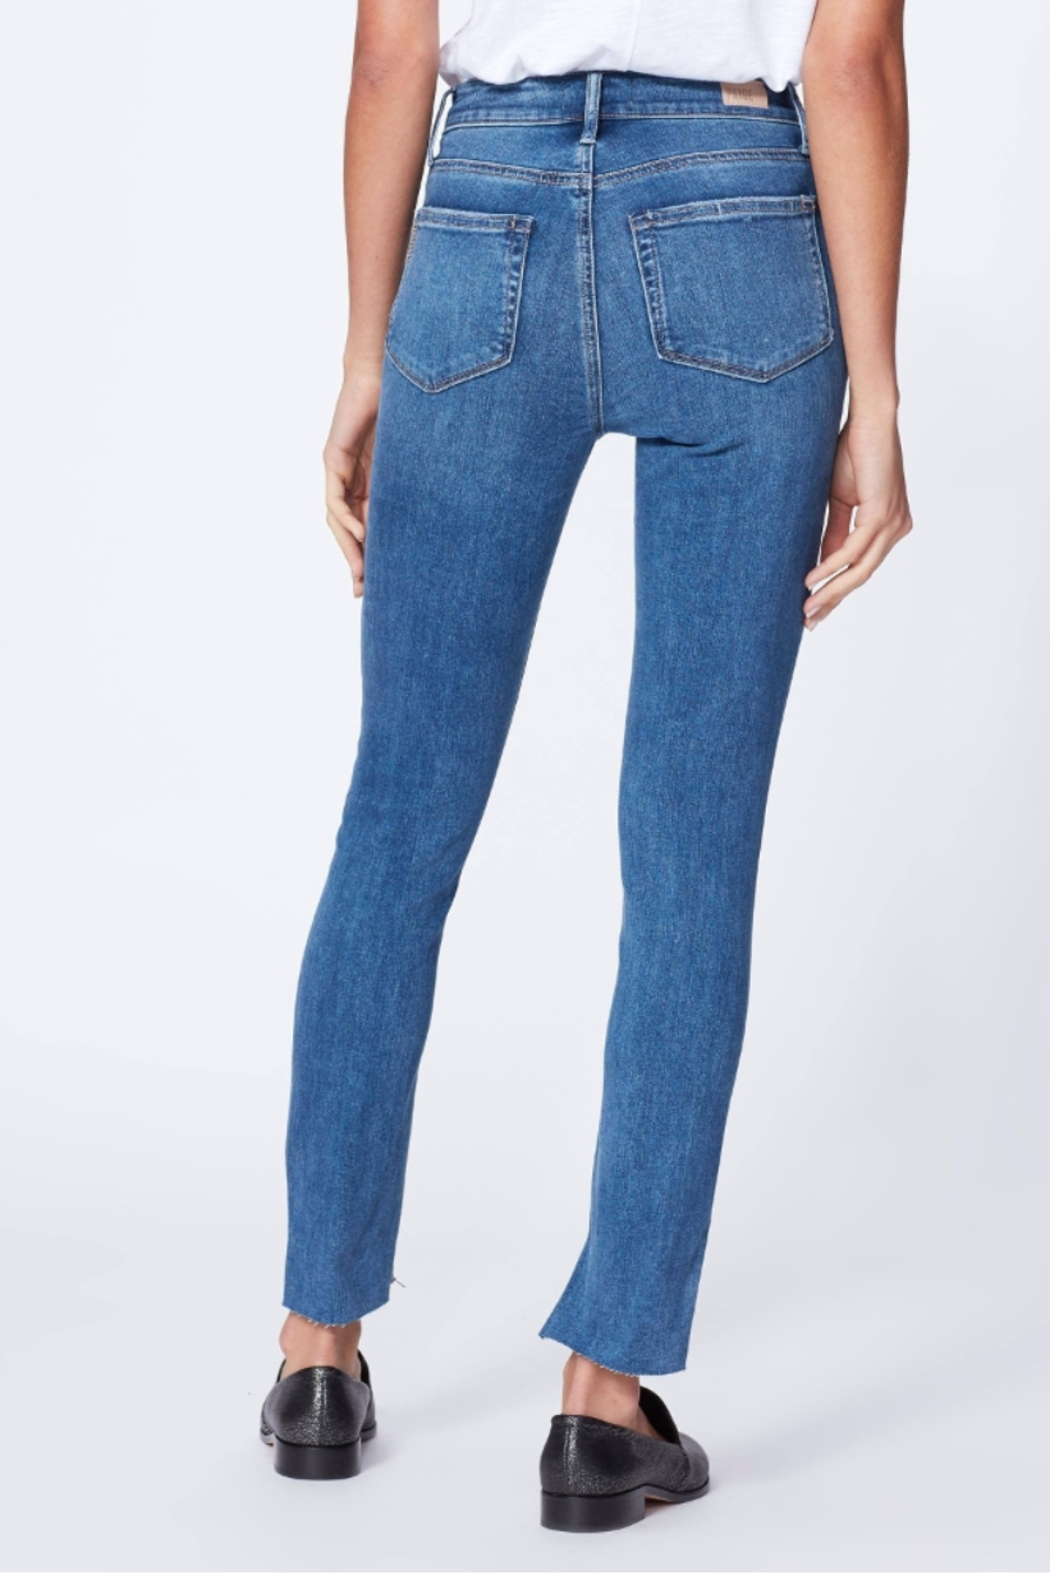 Paige Denim Belmoore Margot Skinny Jean - Back Cropped Image